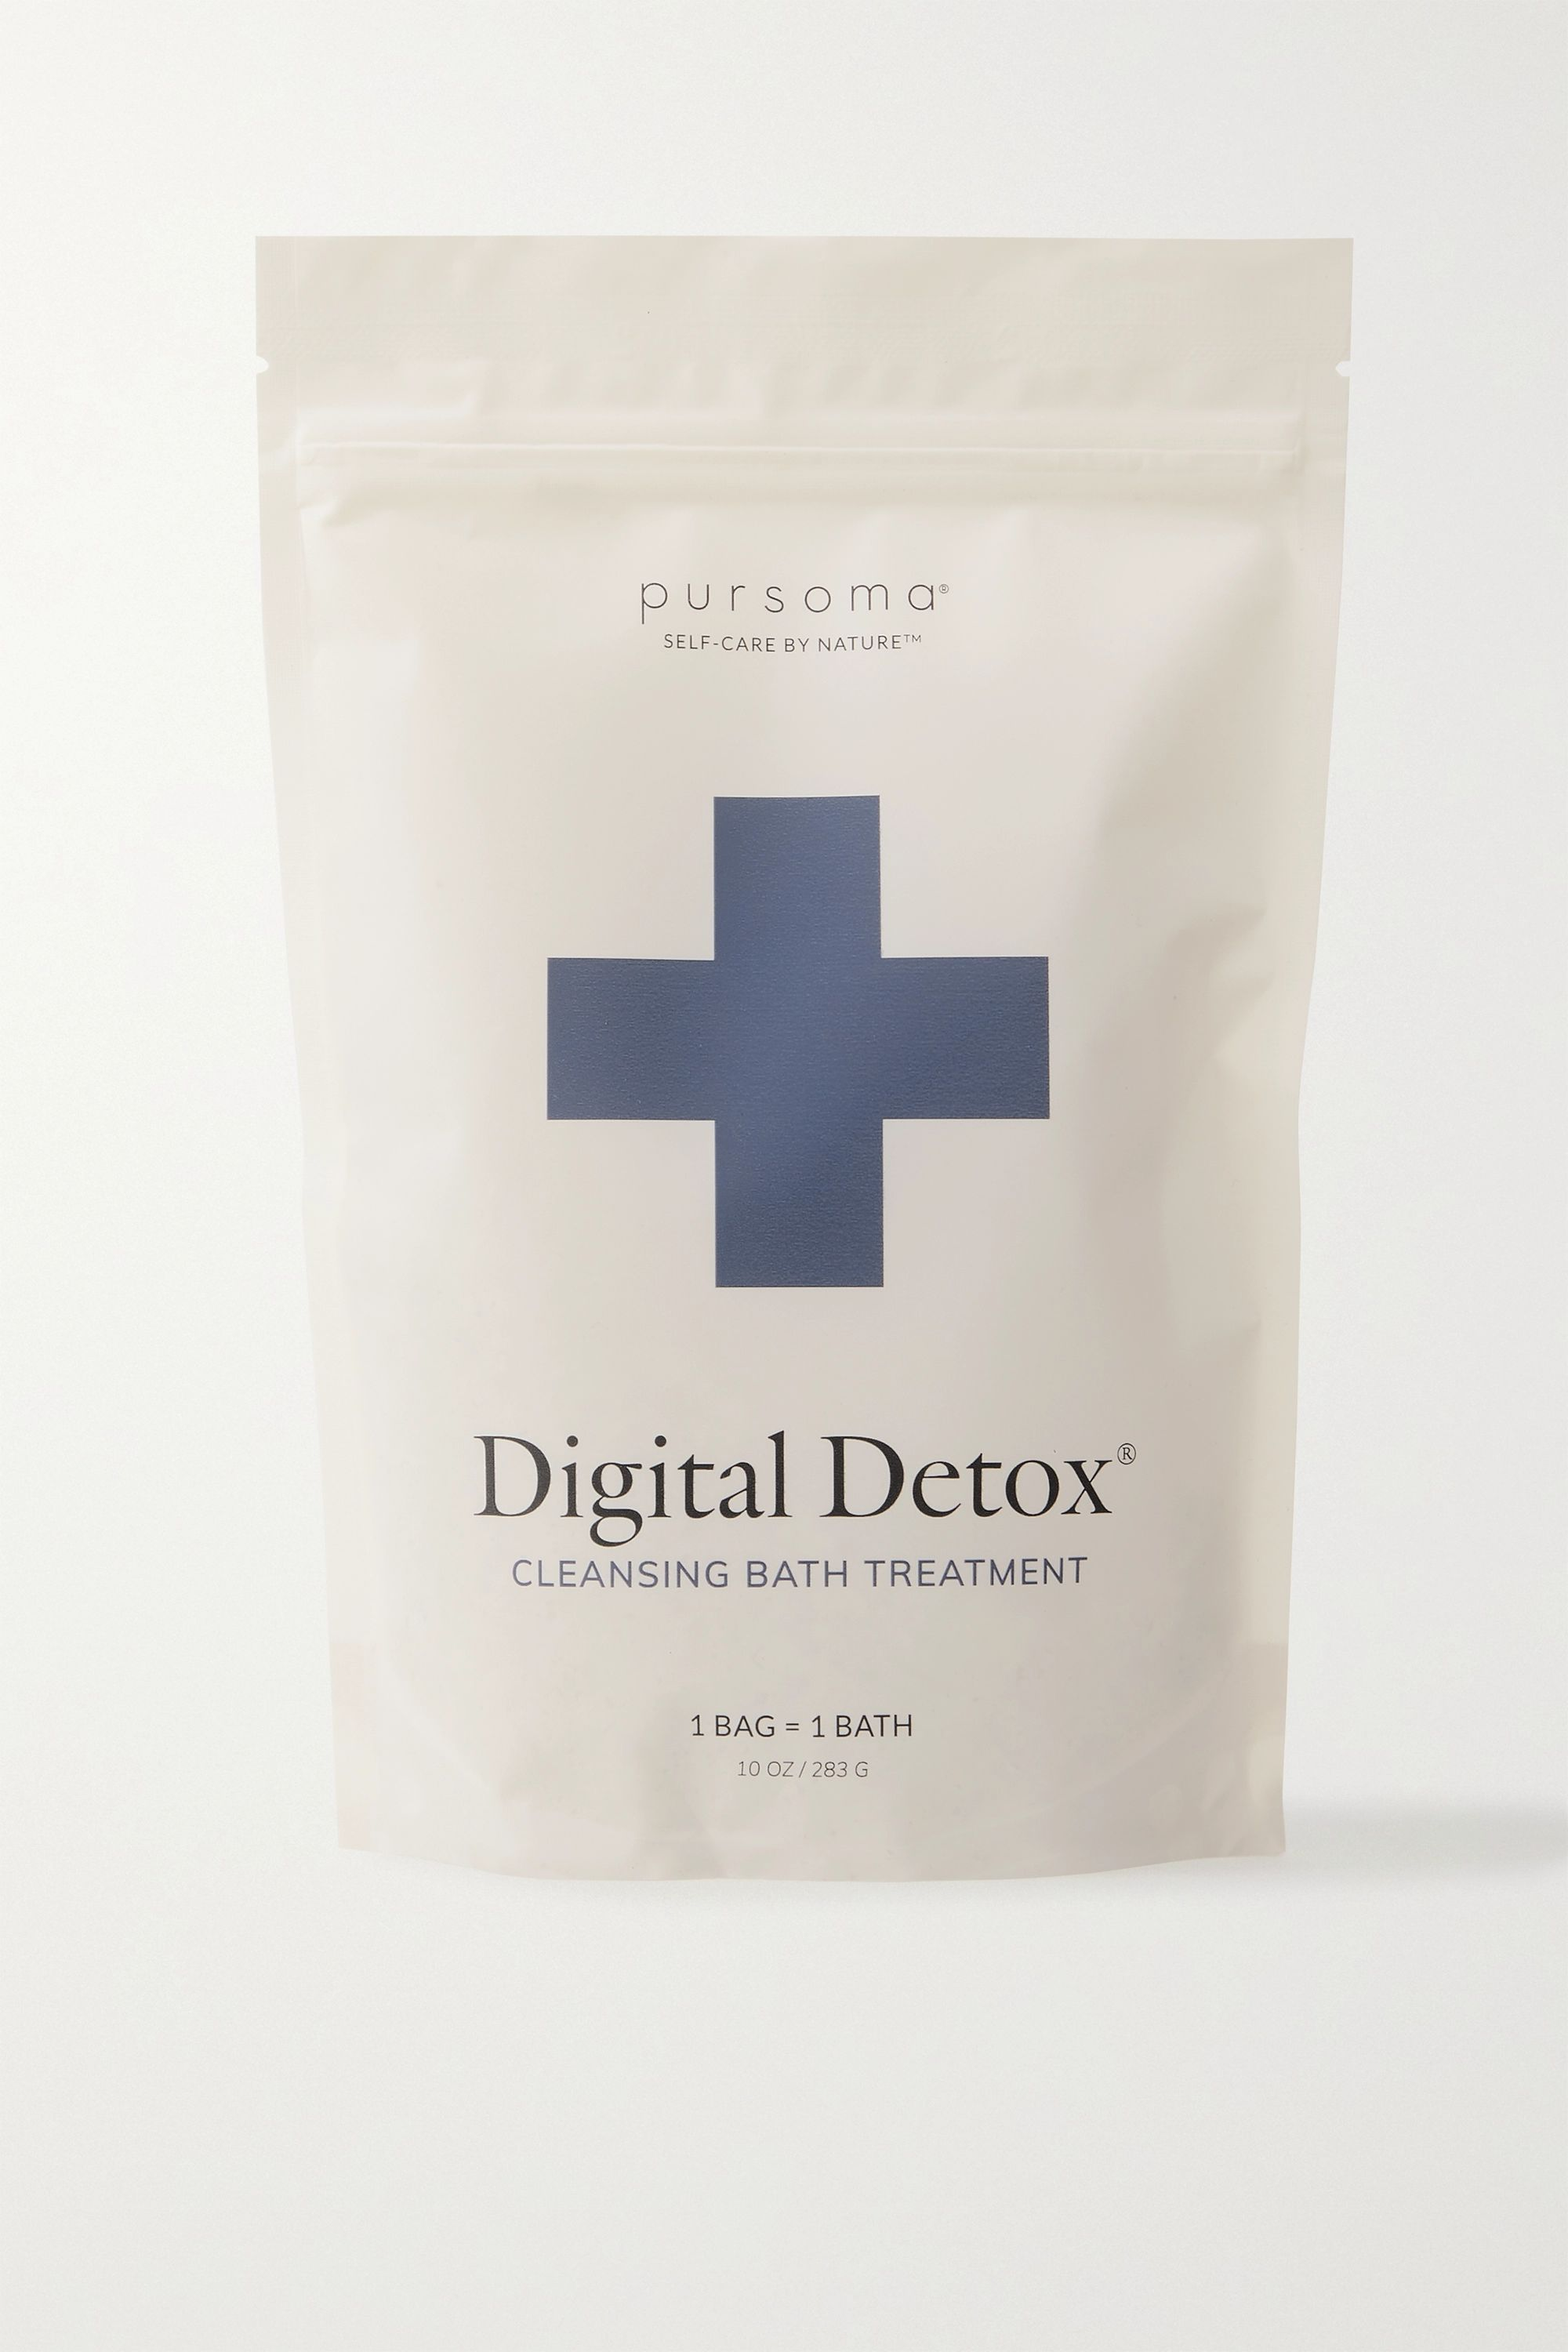 Pursoma Digital Detox Bath Soak, 283g